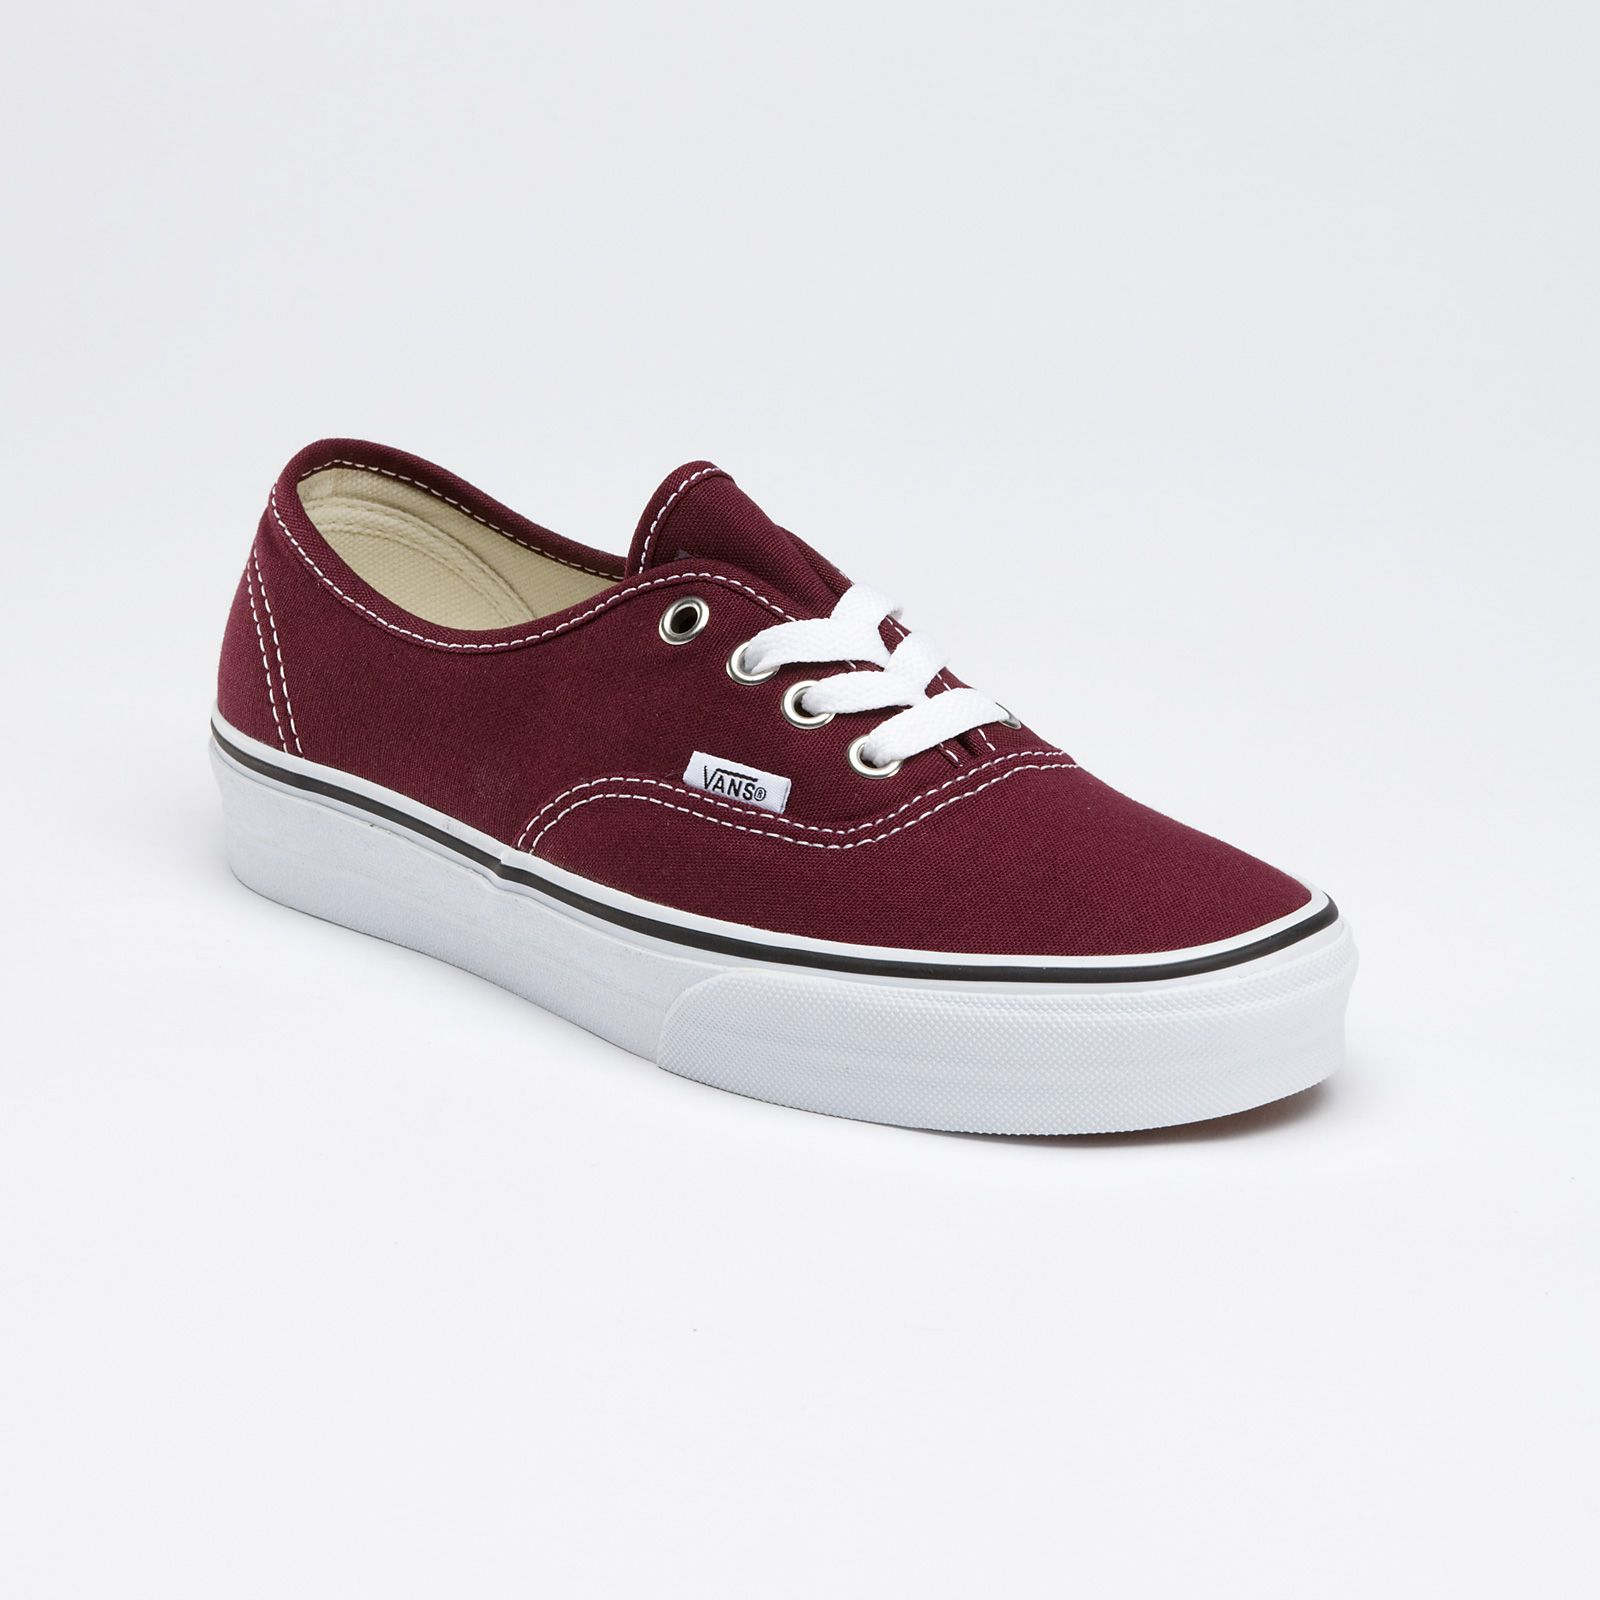 75ca27921b maroon vans + orange laces   hokies!